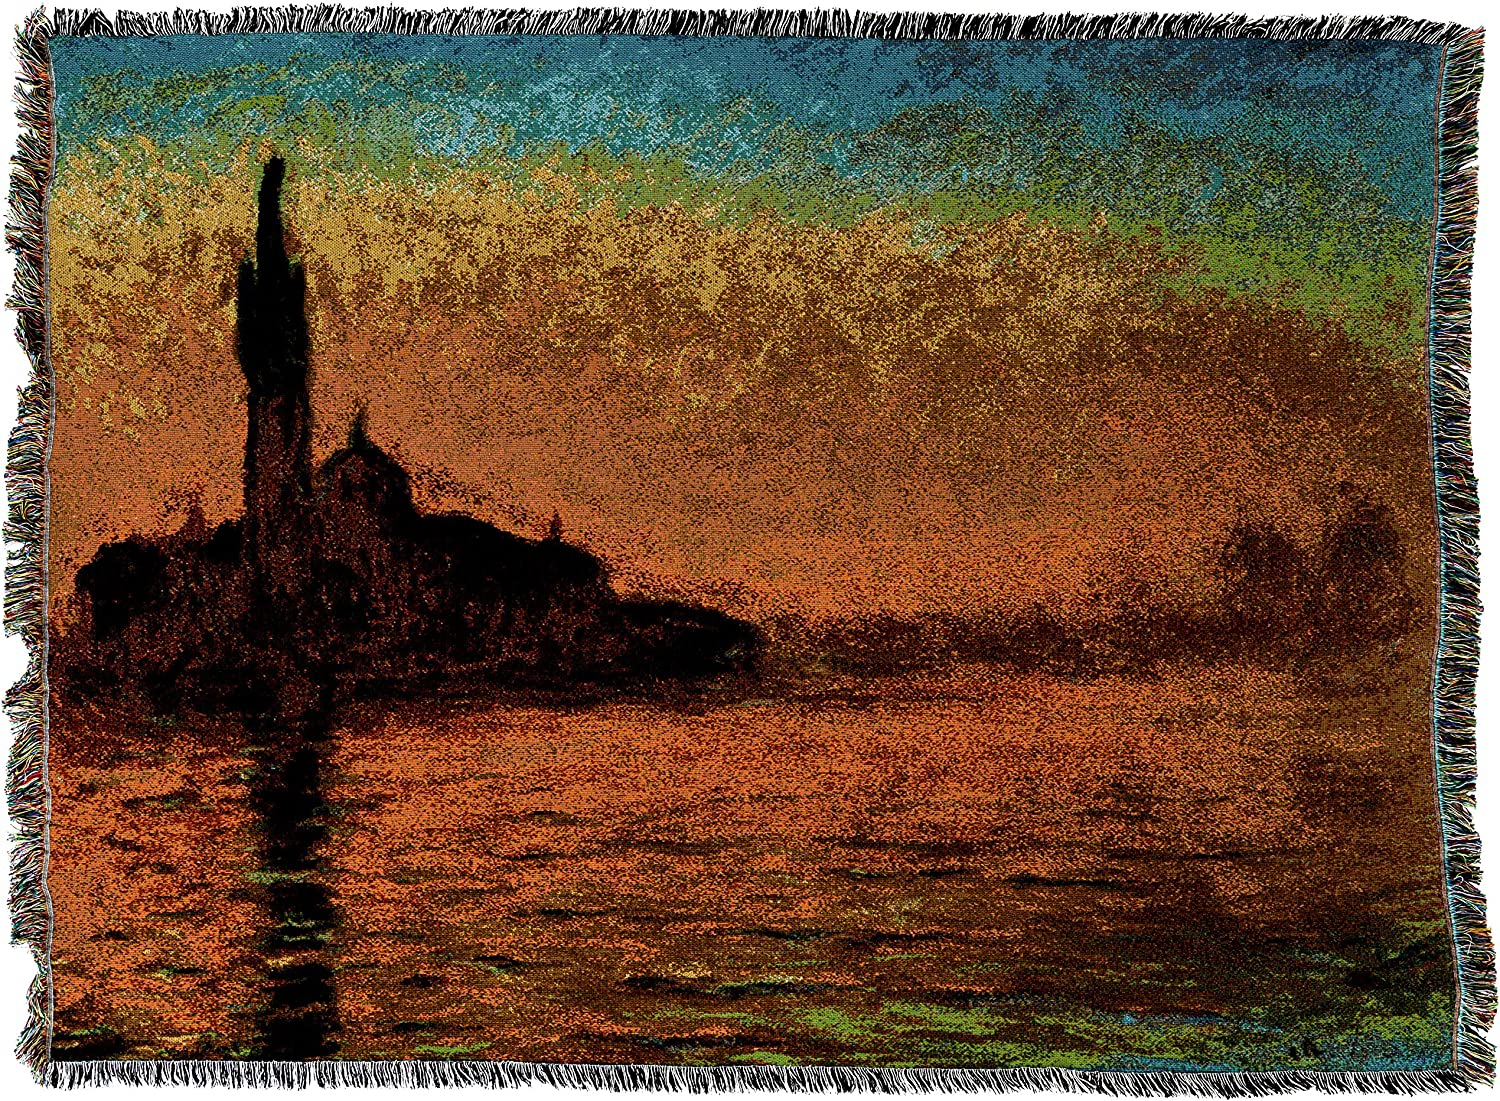 Pure Country Weavers  San Giorgio Maggiore At Dusk Blanket  Tapestry Throw